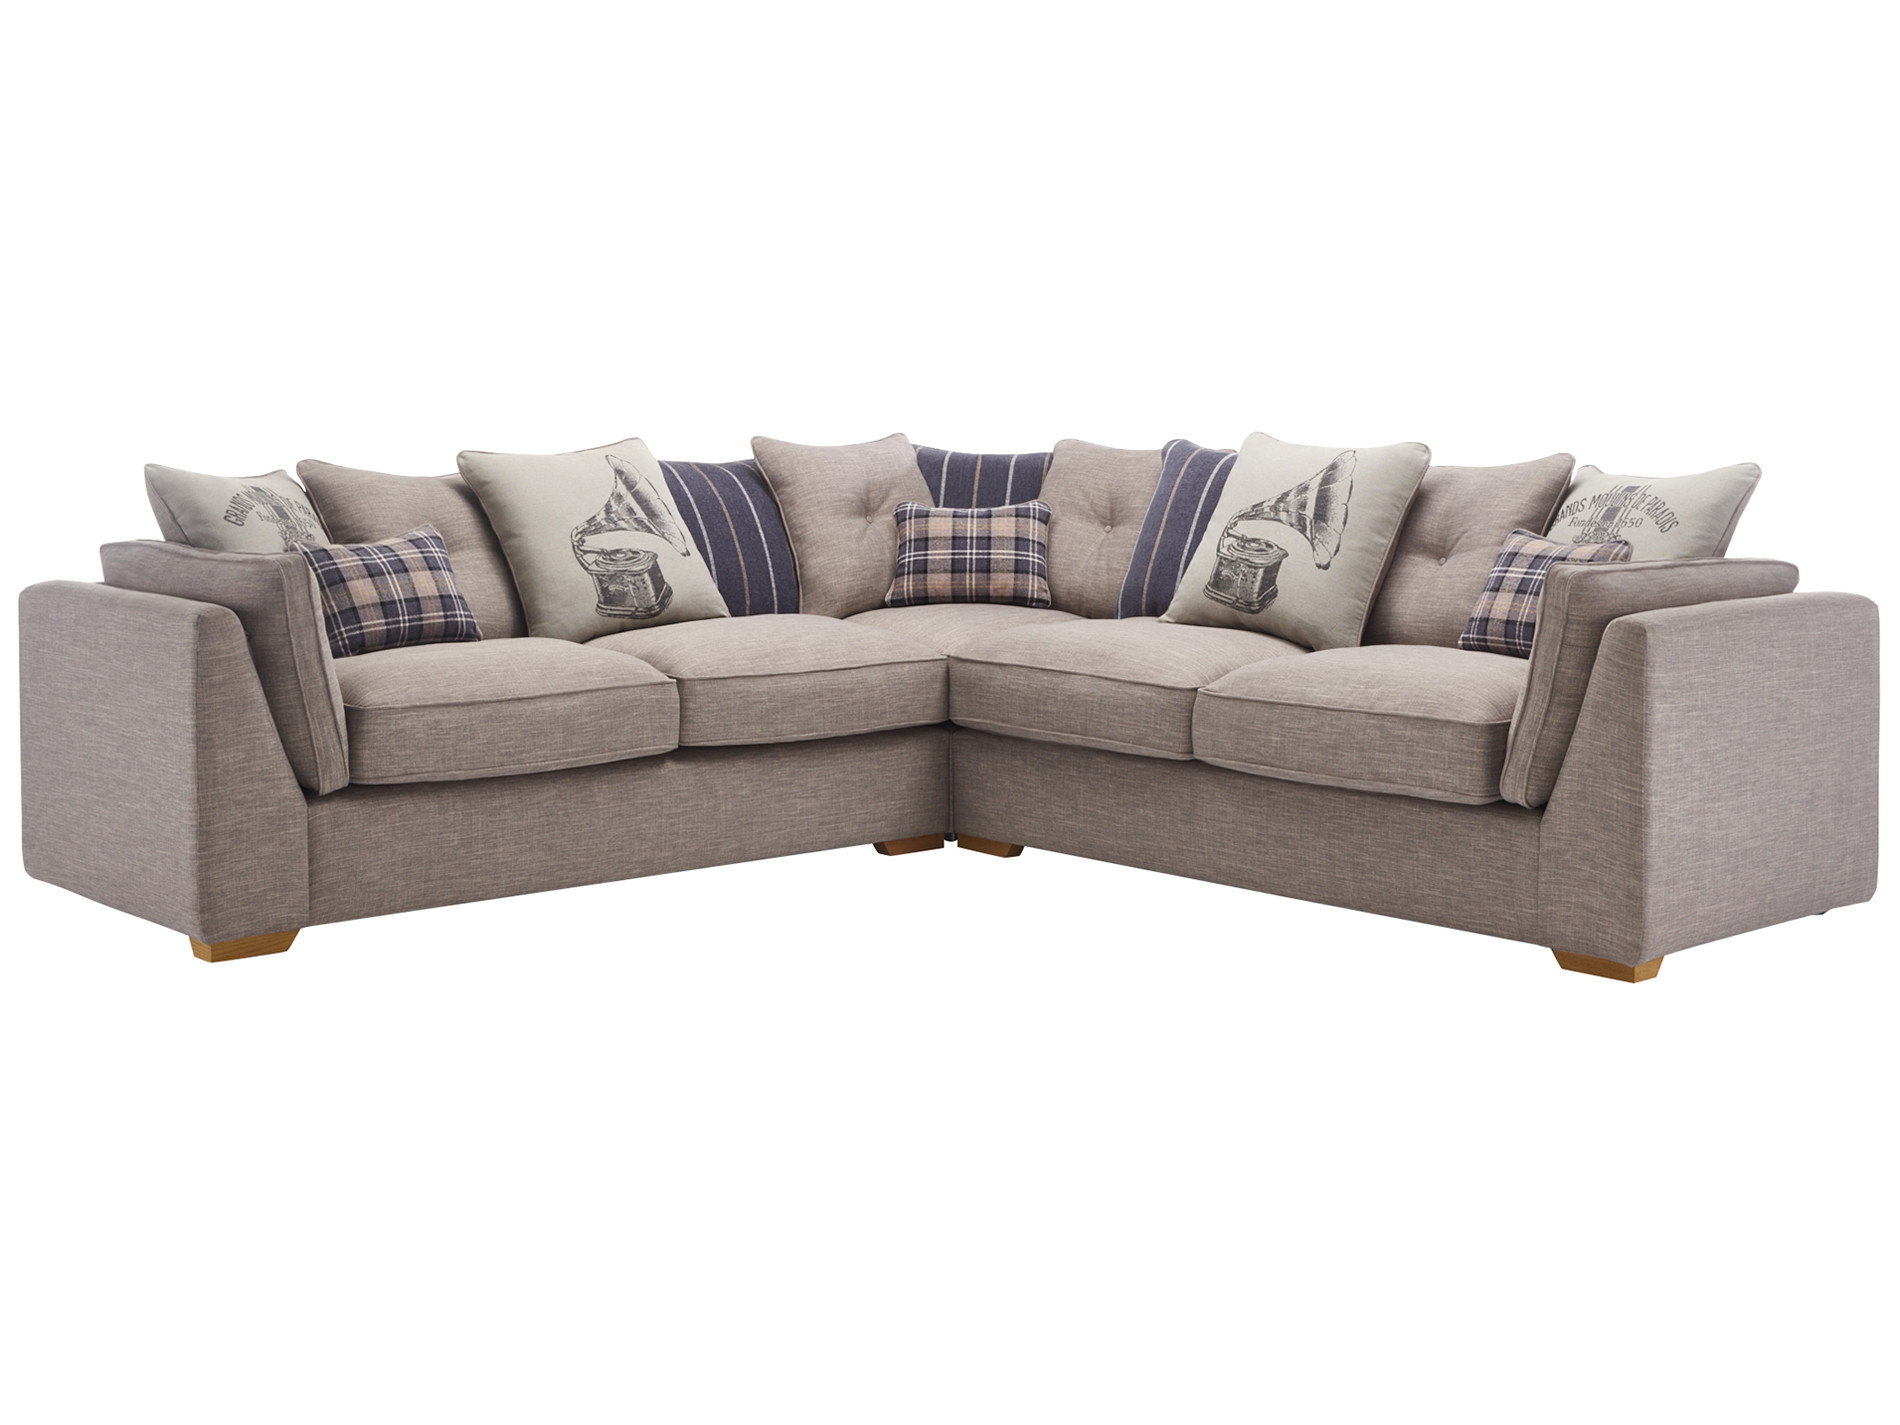 Large 7 seater corner sofa refil sofa for Sofa 7 seater